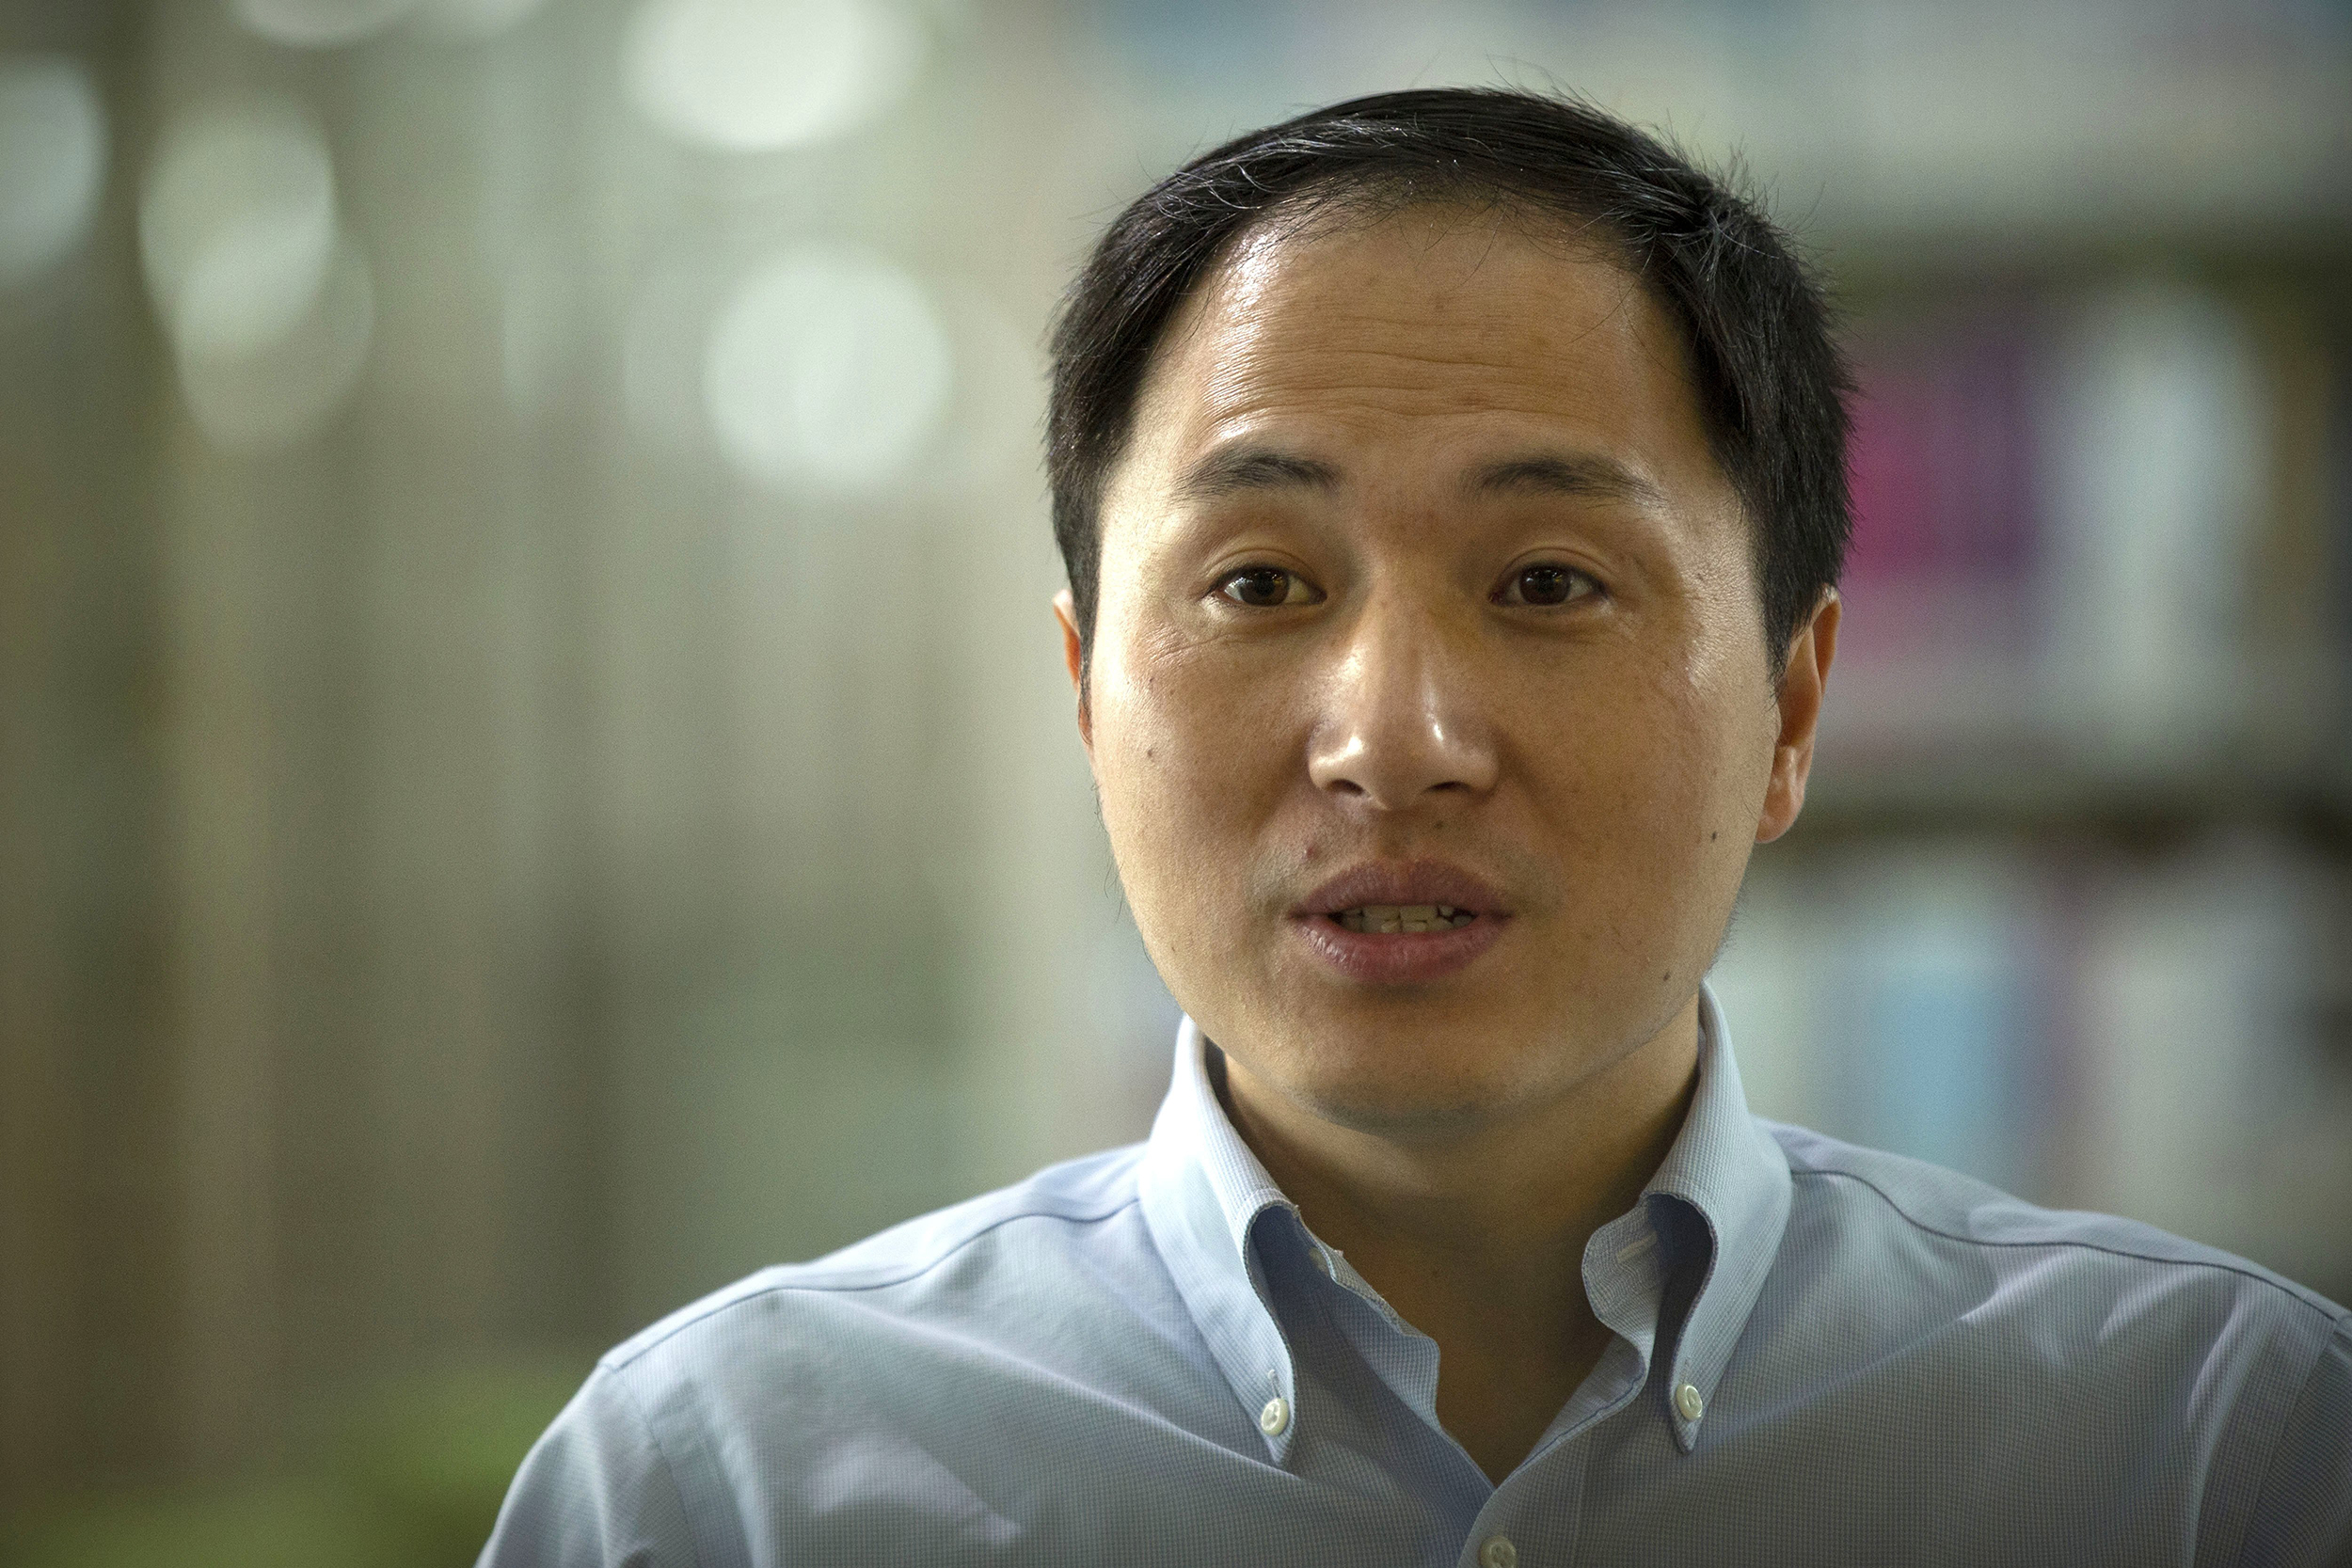 China orders halt to gene-editing after scientist's claims